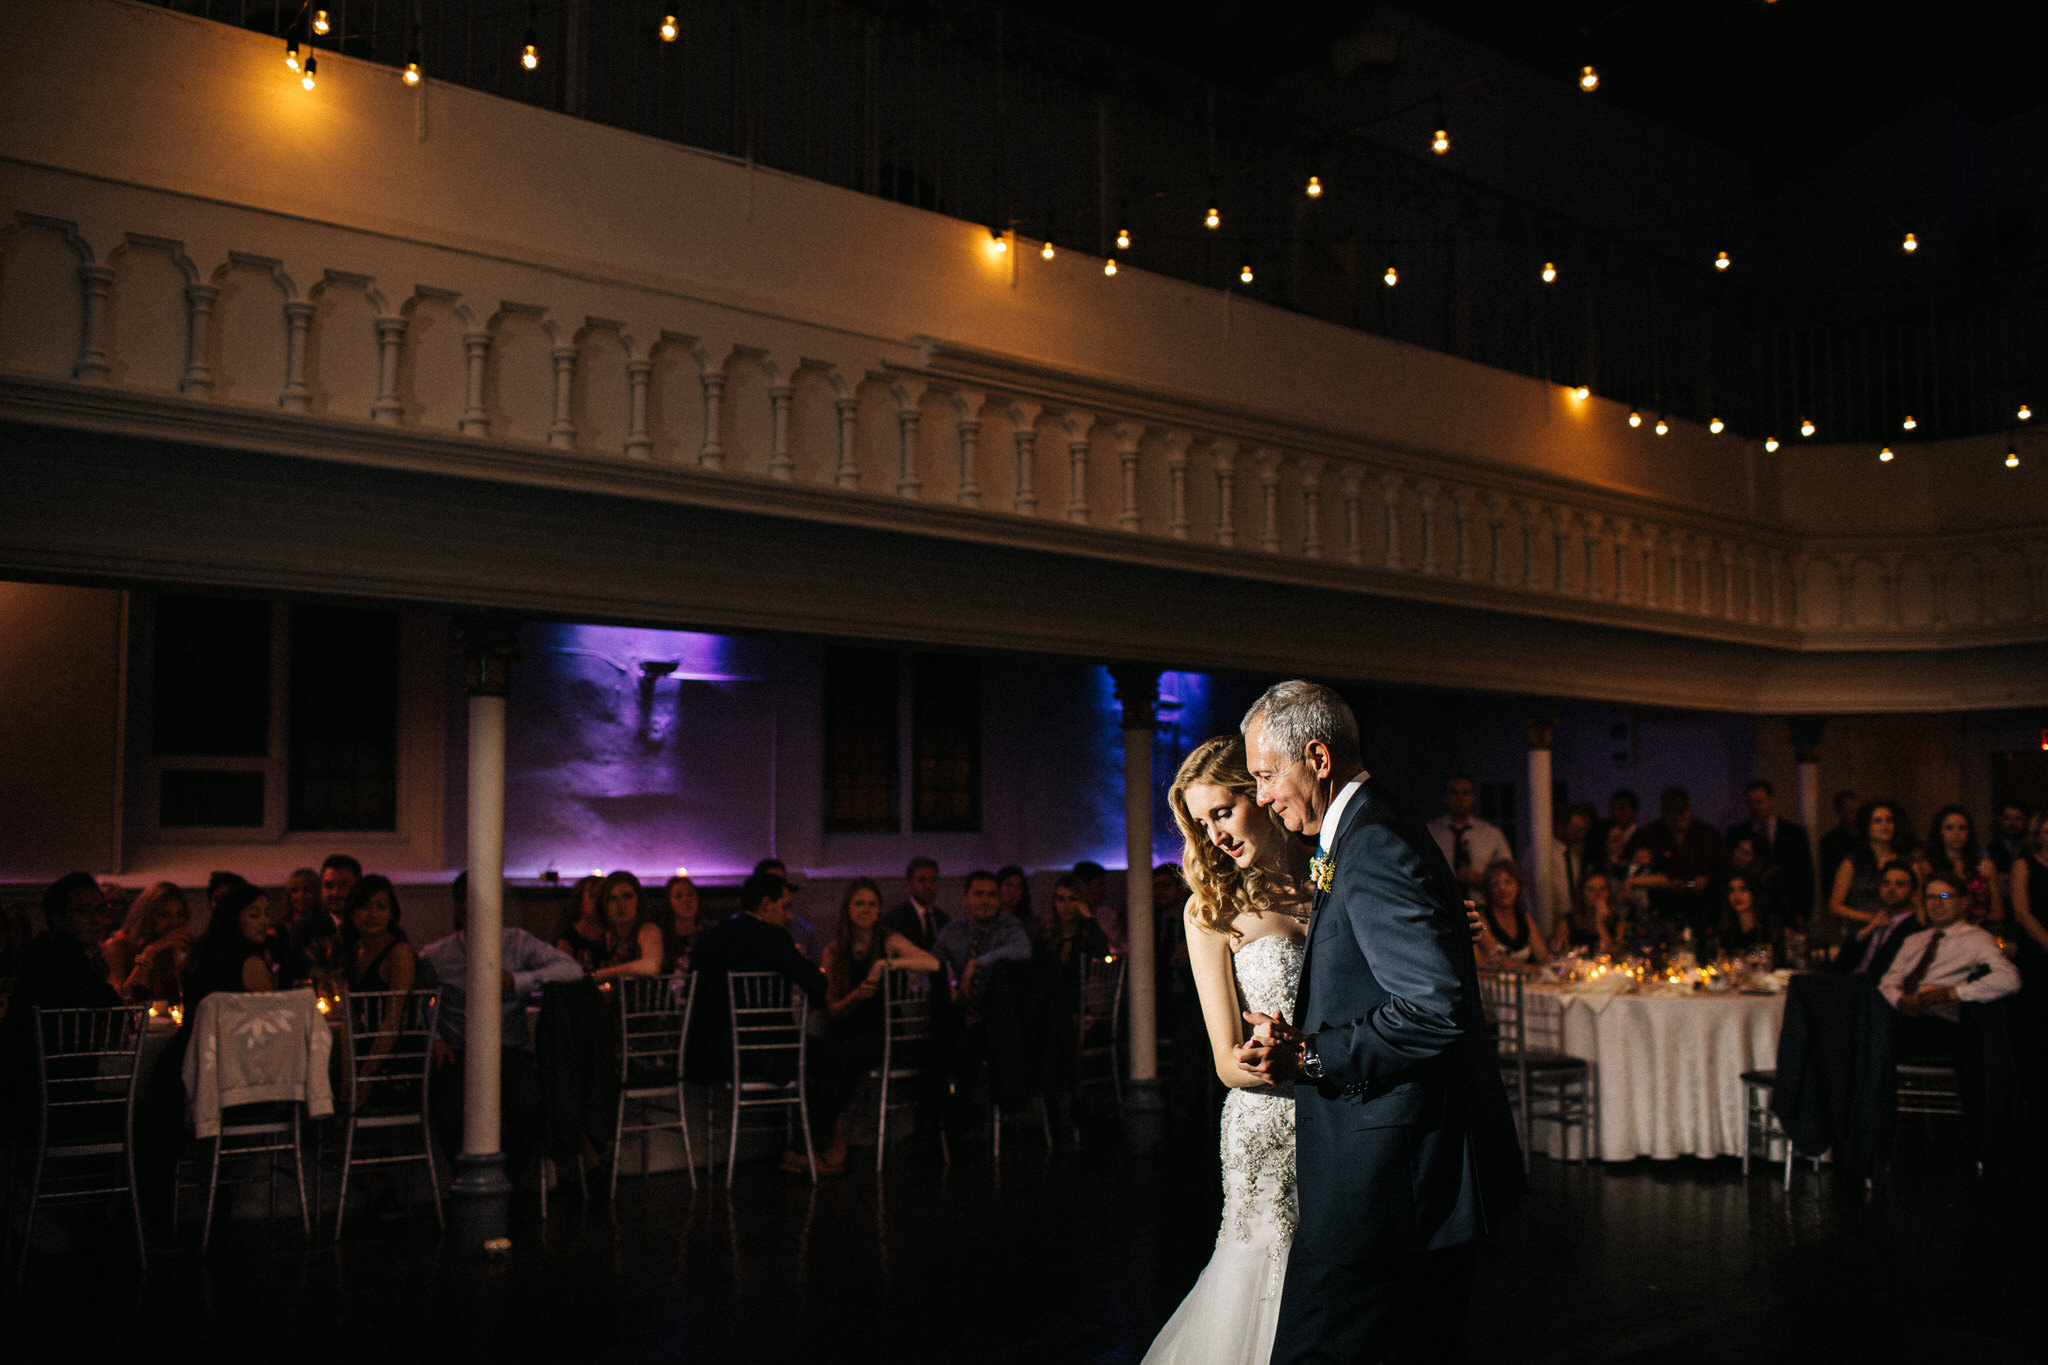 father daughter dance, guest photos, berkeley church wedding, bridal portraits, toronto wedding photographer, berkeley field house, dinner berkeley church